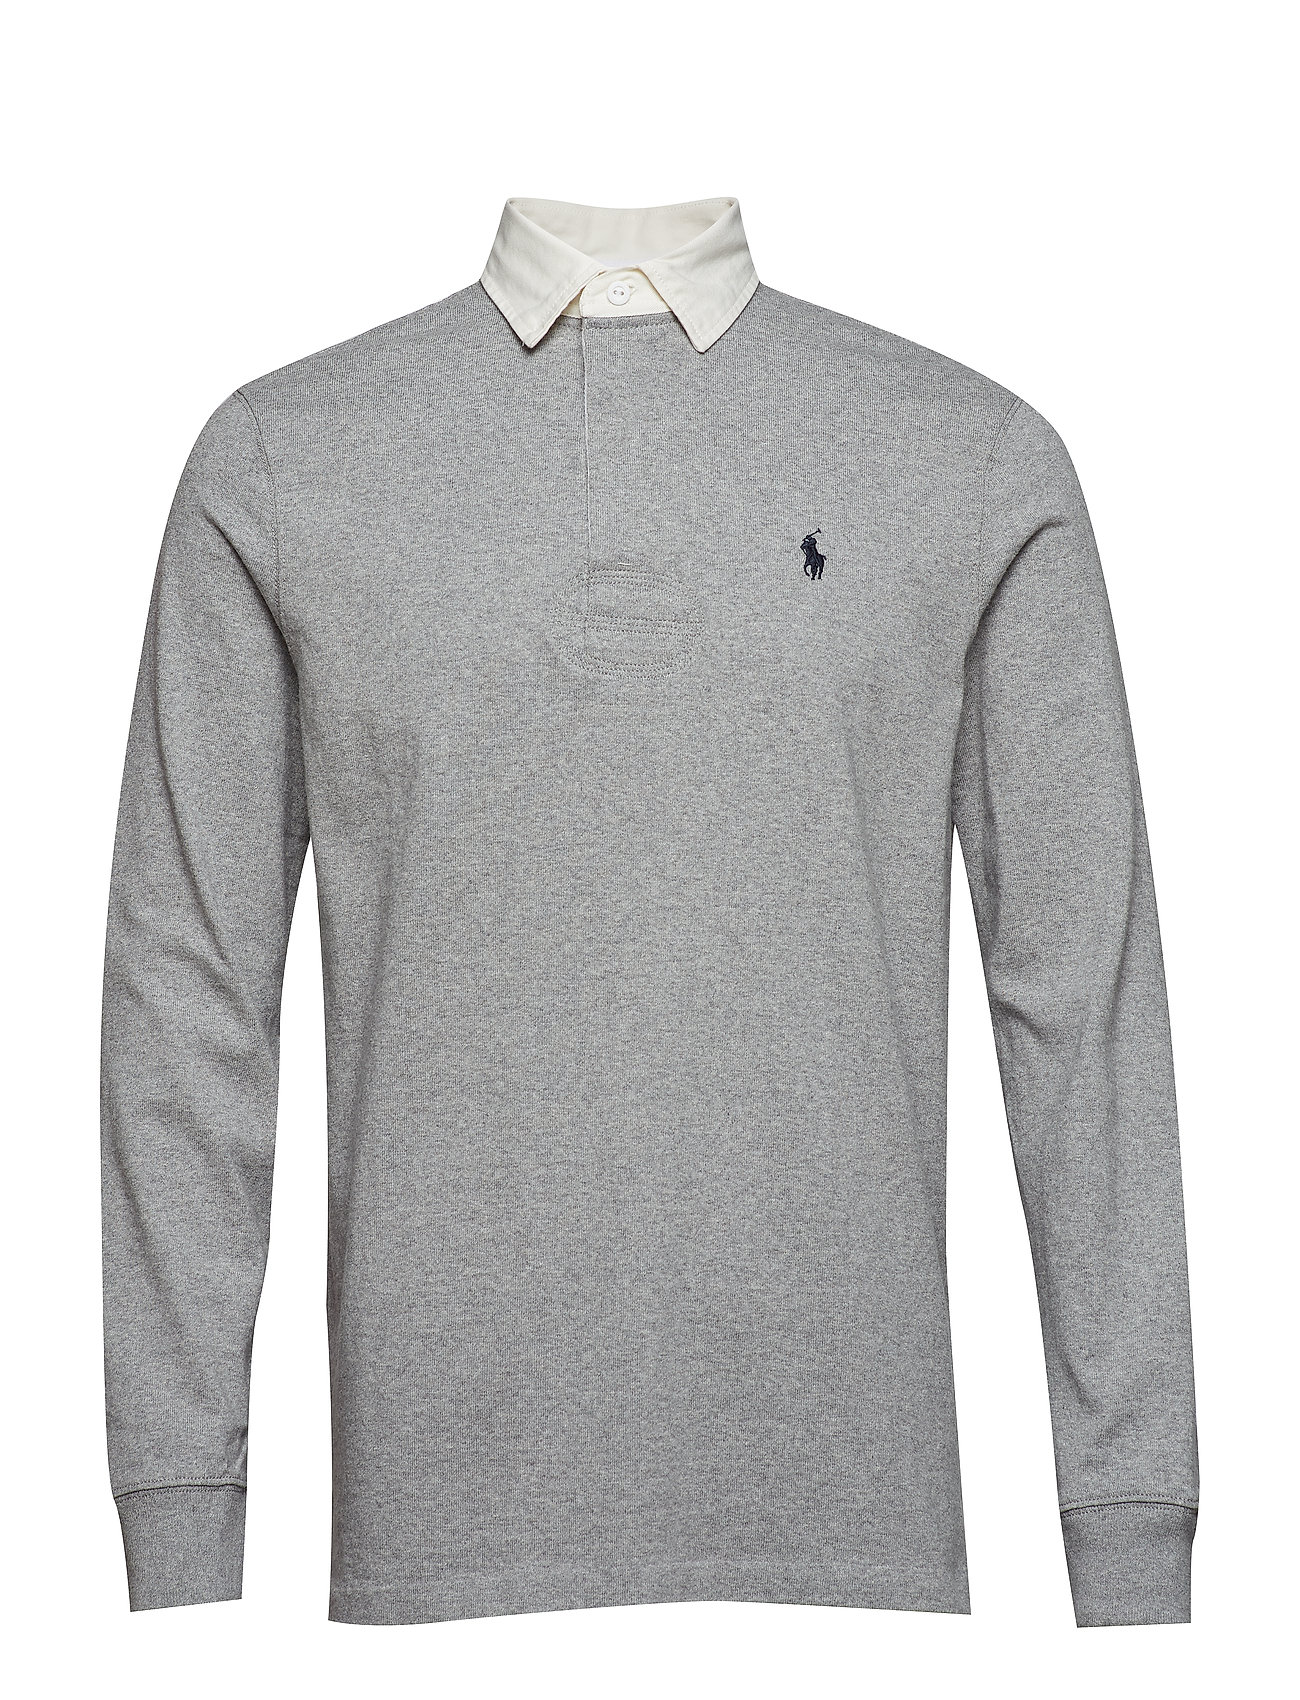 fb25cd01562 The Iconic Rugby Shirt (League Heather) (£75) - Polo Ralph Lauren ...